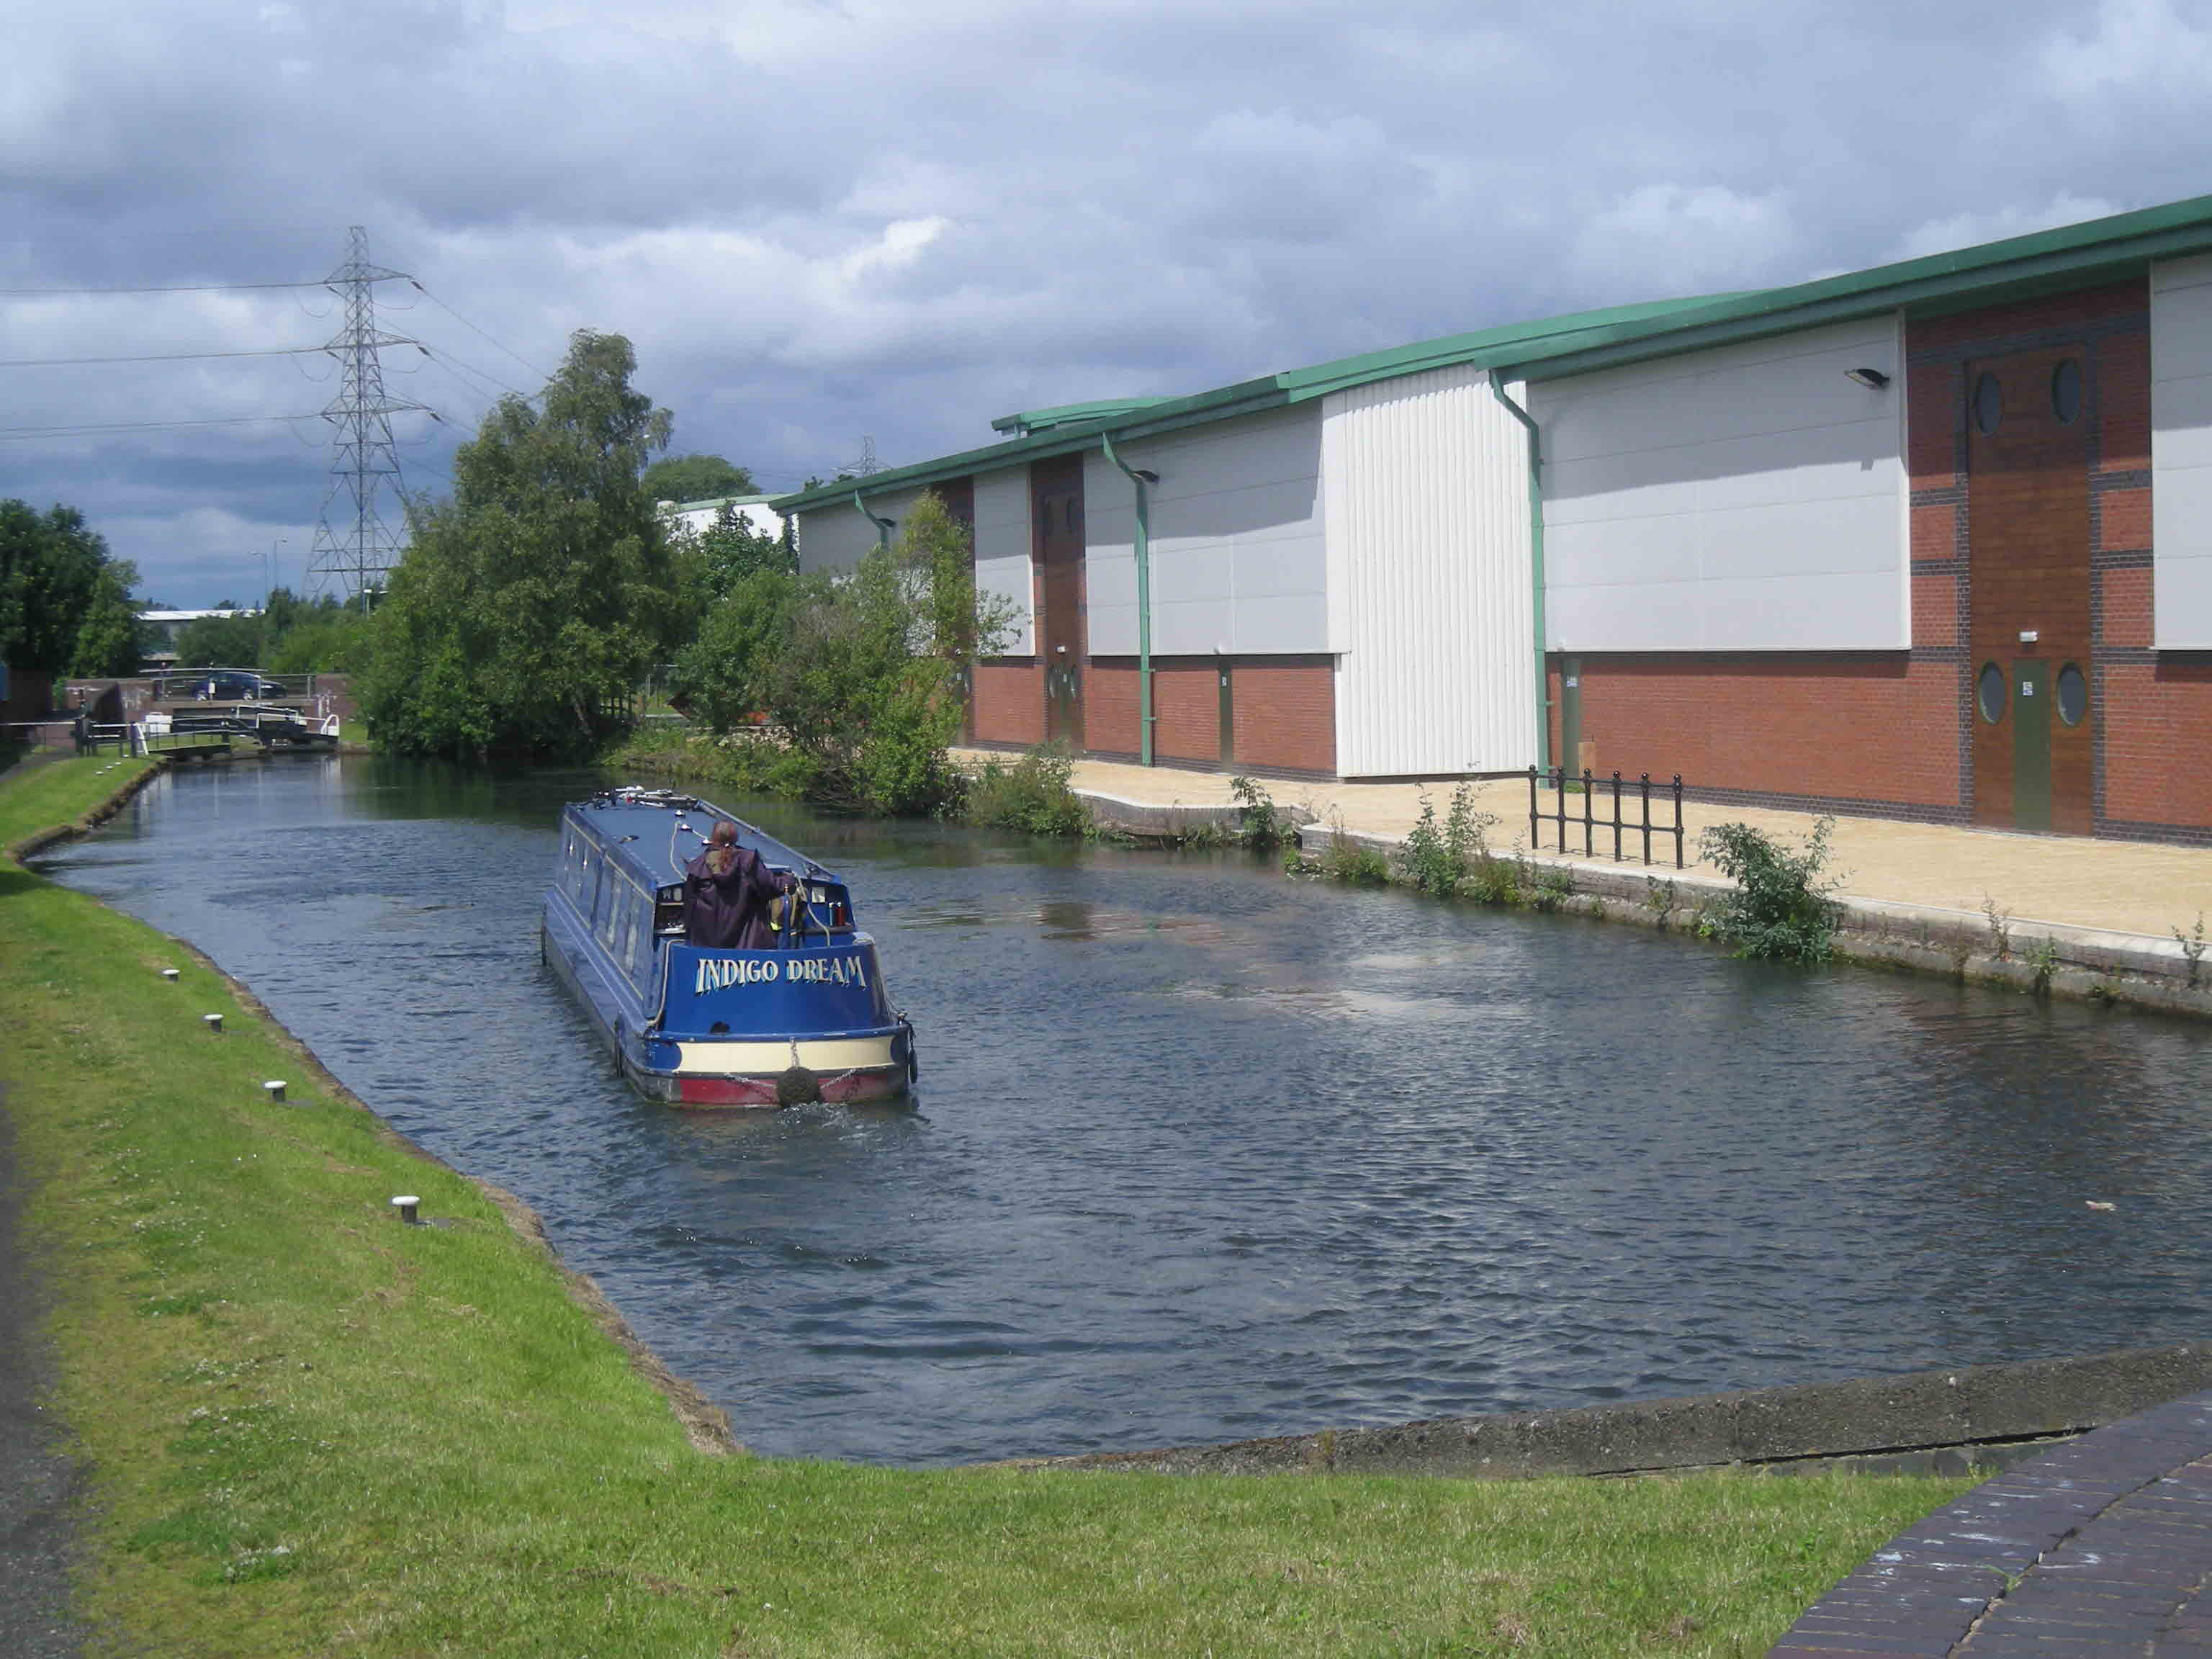 Attractive modern canalside industry